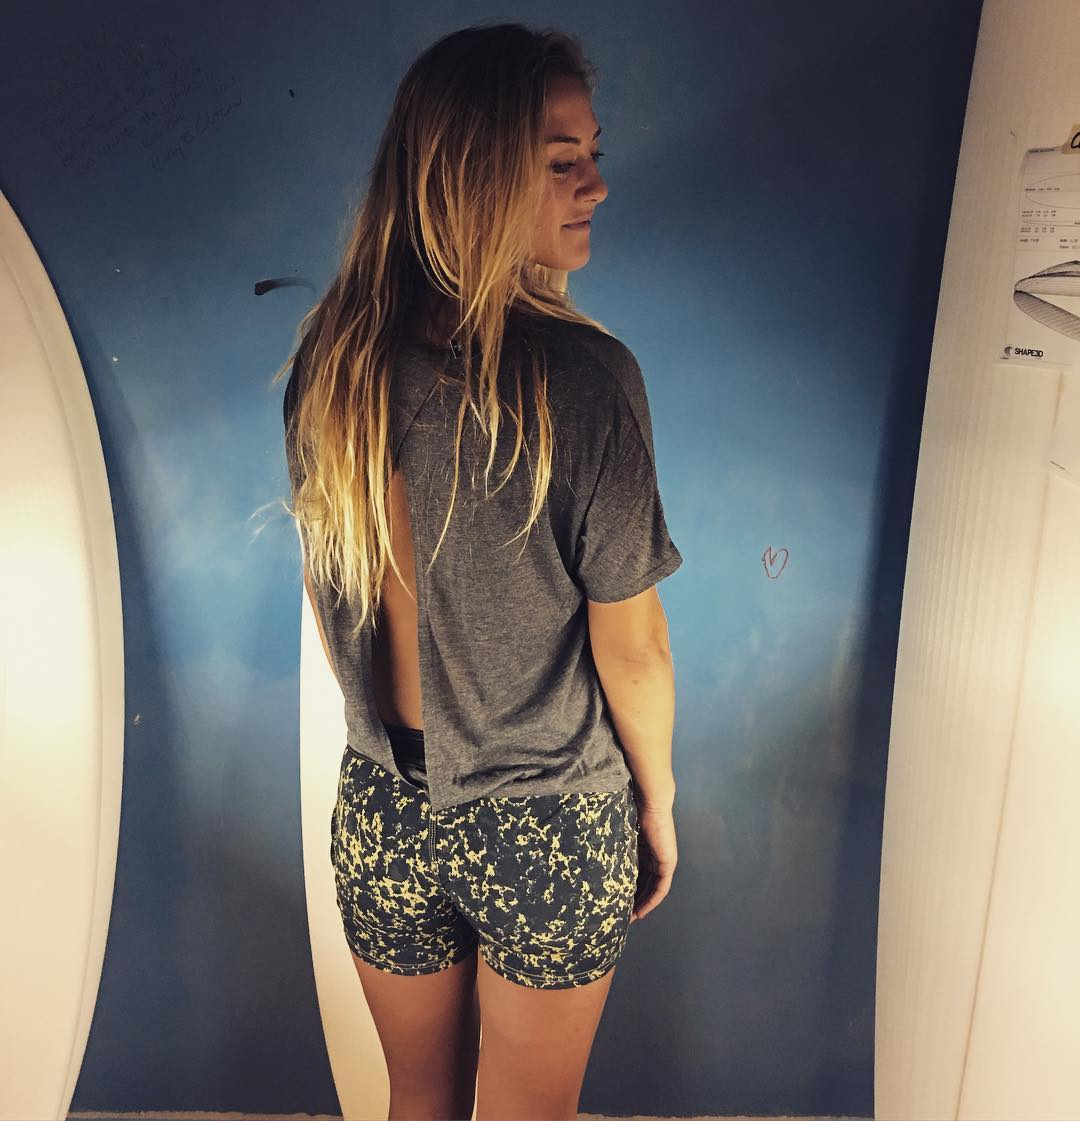 The Grunge Boardshorts and Serenity top really get the job done for Andrea in Cordell's shaping room. #bbr #bbrsurf #bbrsurfwear #buccaneerboardriders #andreaartukovich #teamrider #grunge #boardshorts #serenity #aftersurf #collection #cordellsurfboards